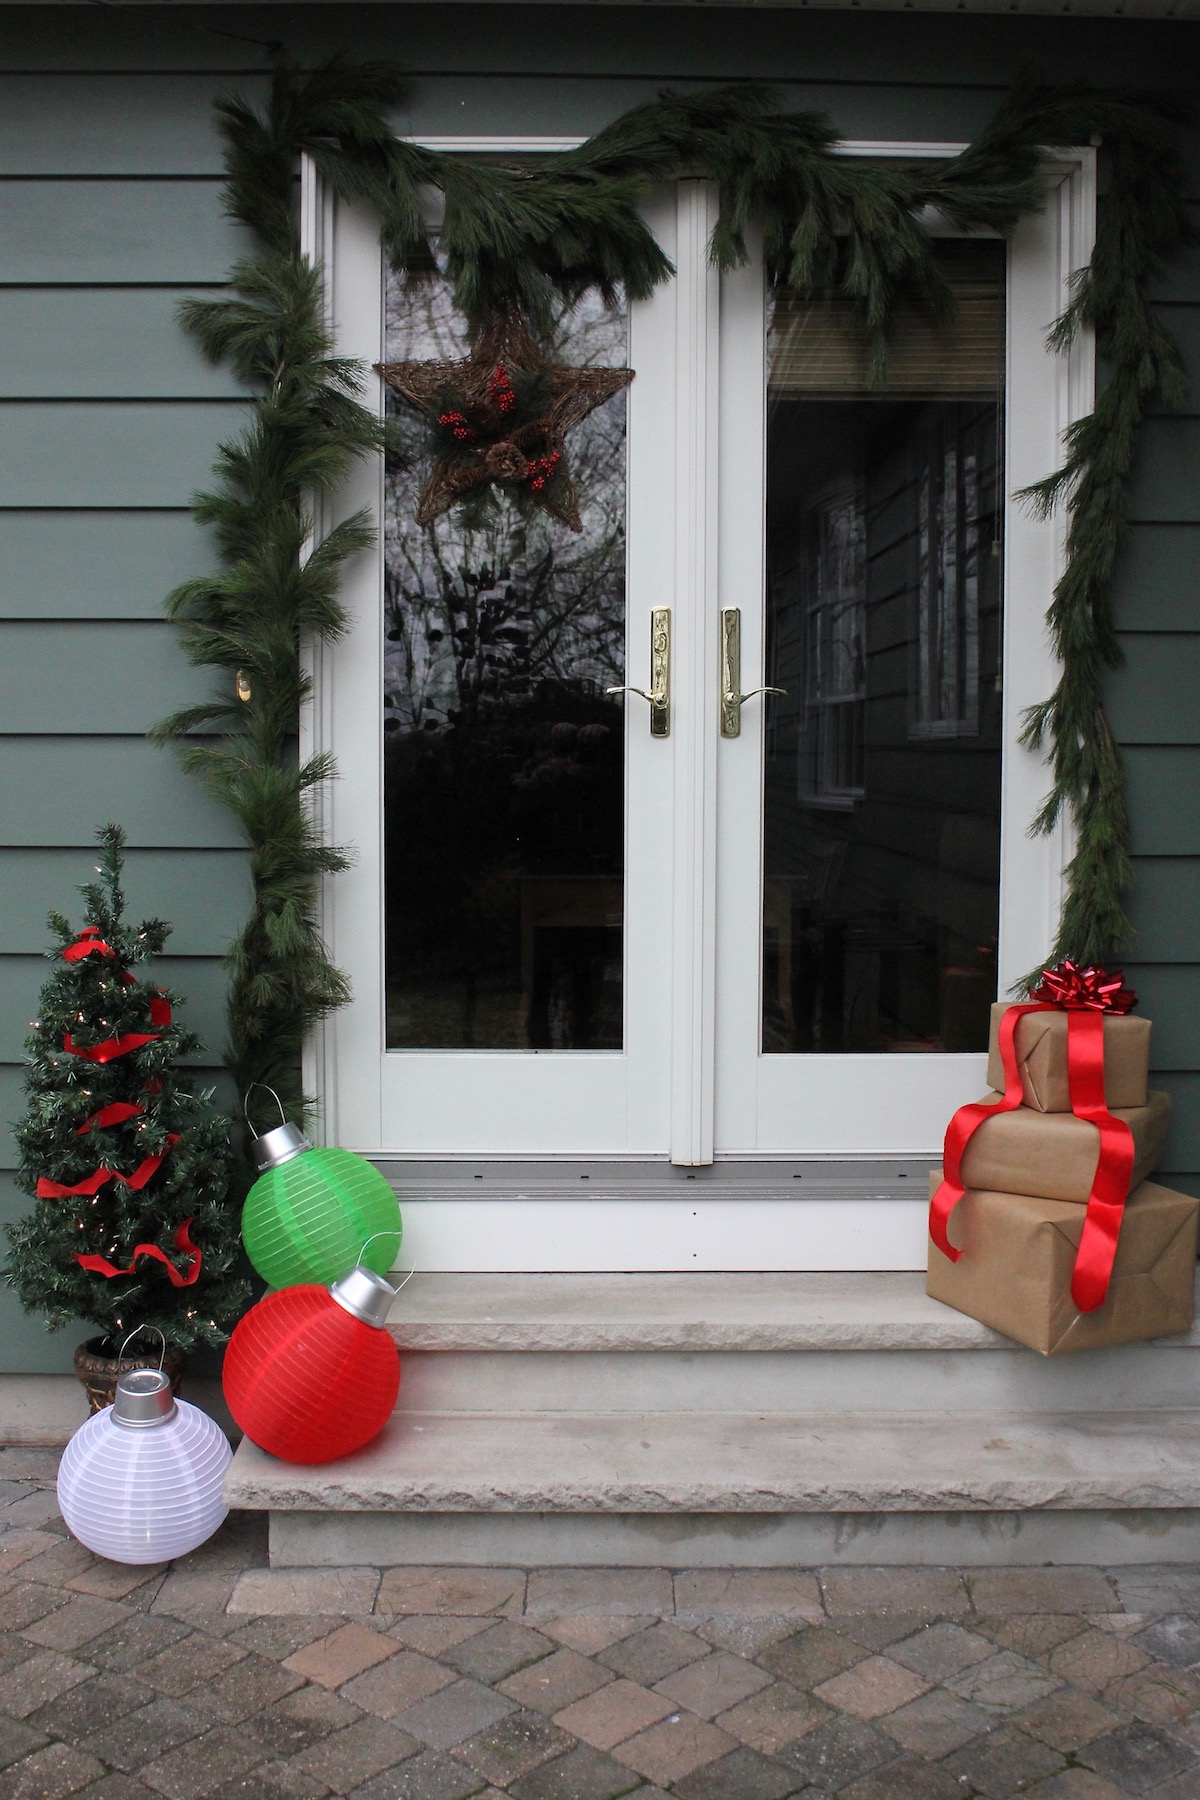 Giant ornaments on stoop